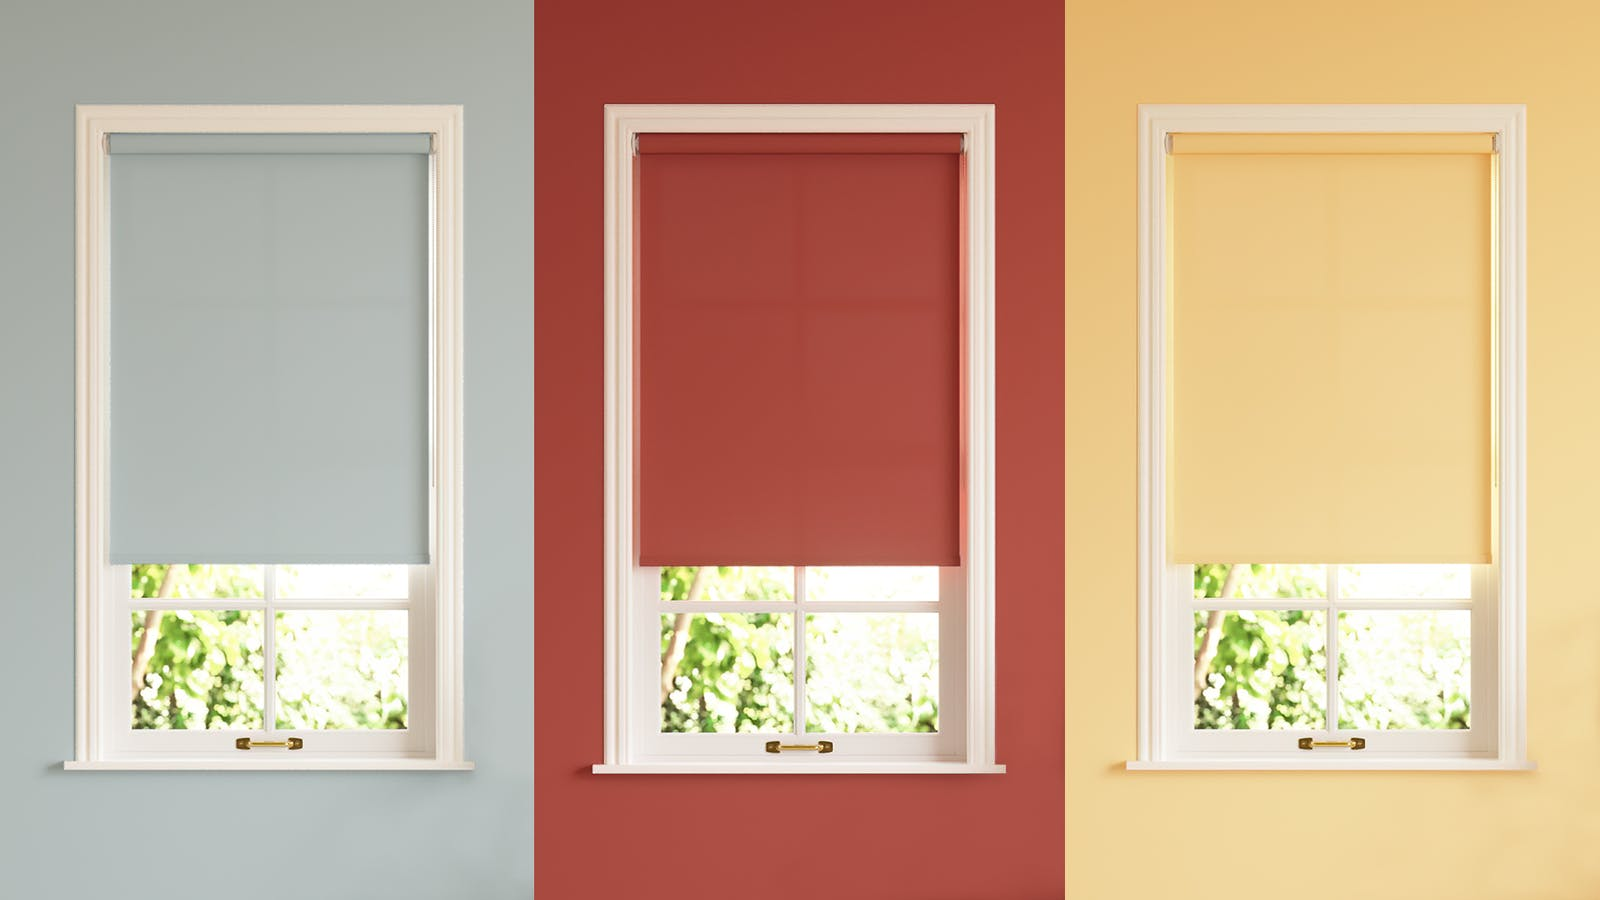 A collage of Lick roller blinds in grey, red and a vibrant yellow